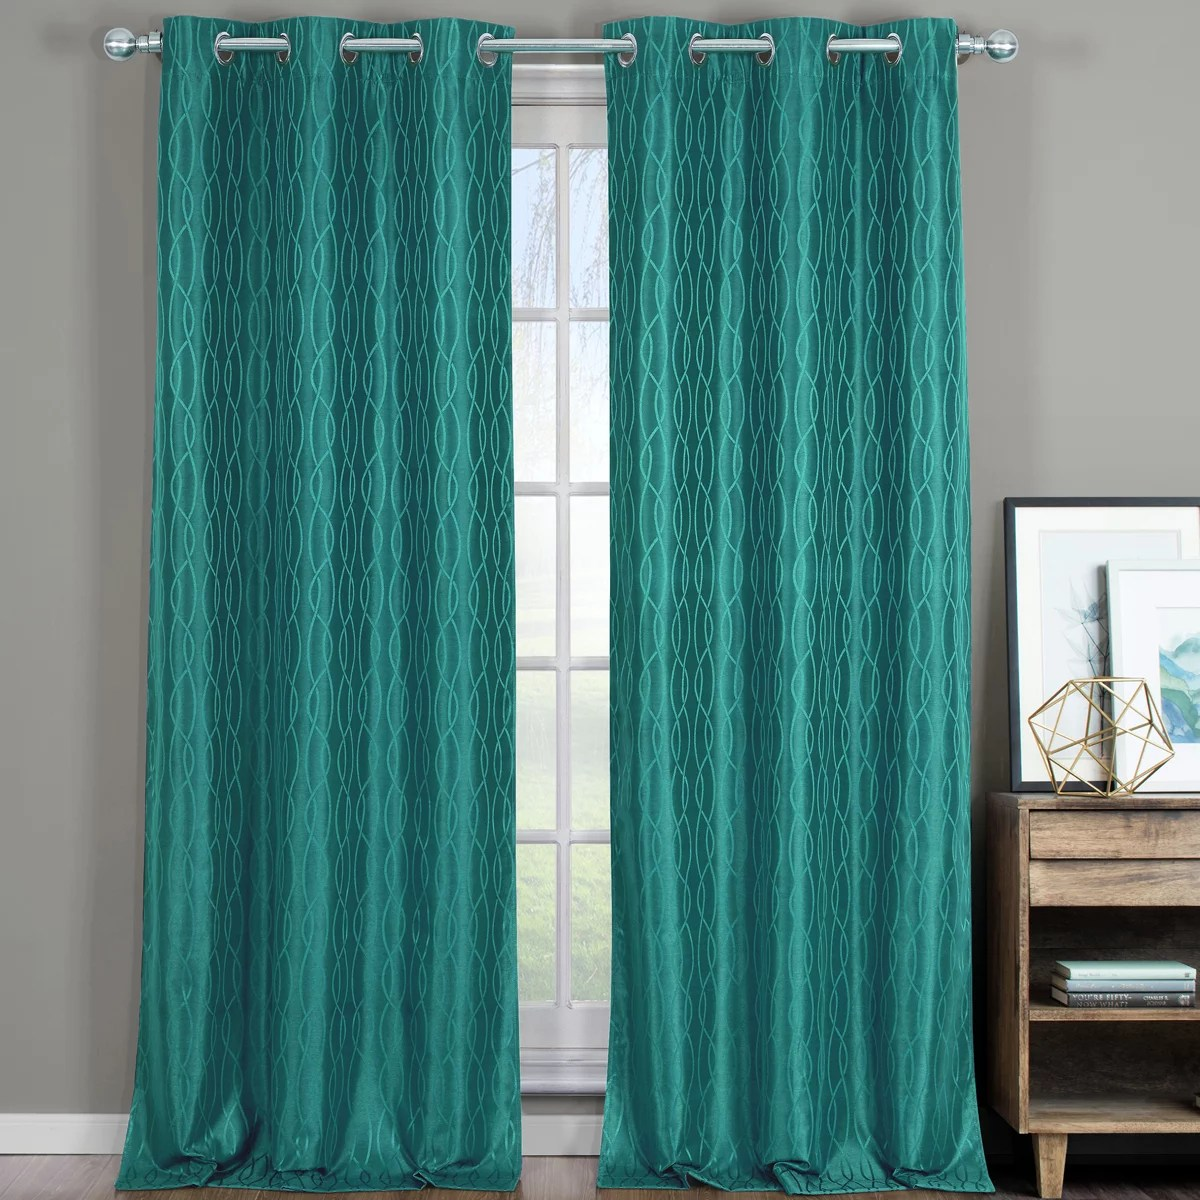 Teal Blackout Curtains Pair Voyage Jacquard Thermal Blackout Curtain Panels With Grommets Set Of 2 76x84 Teal